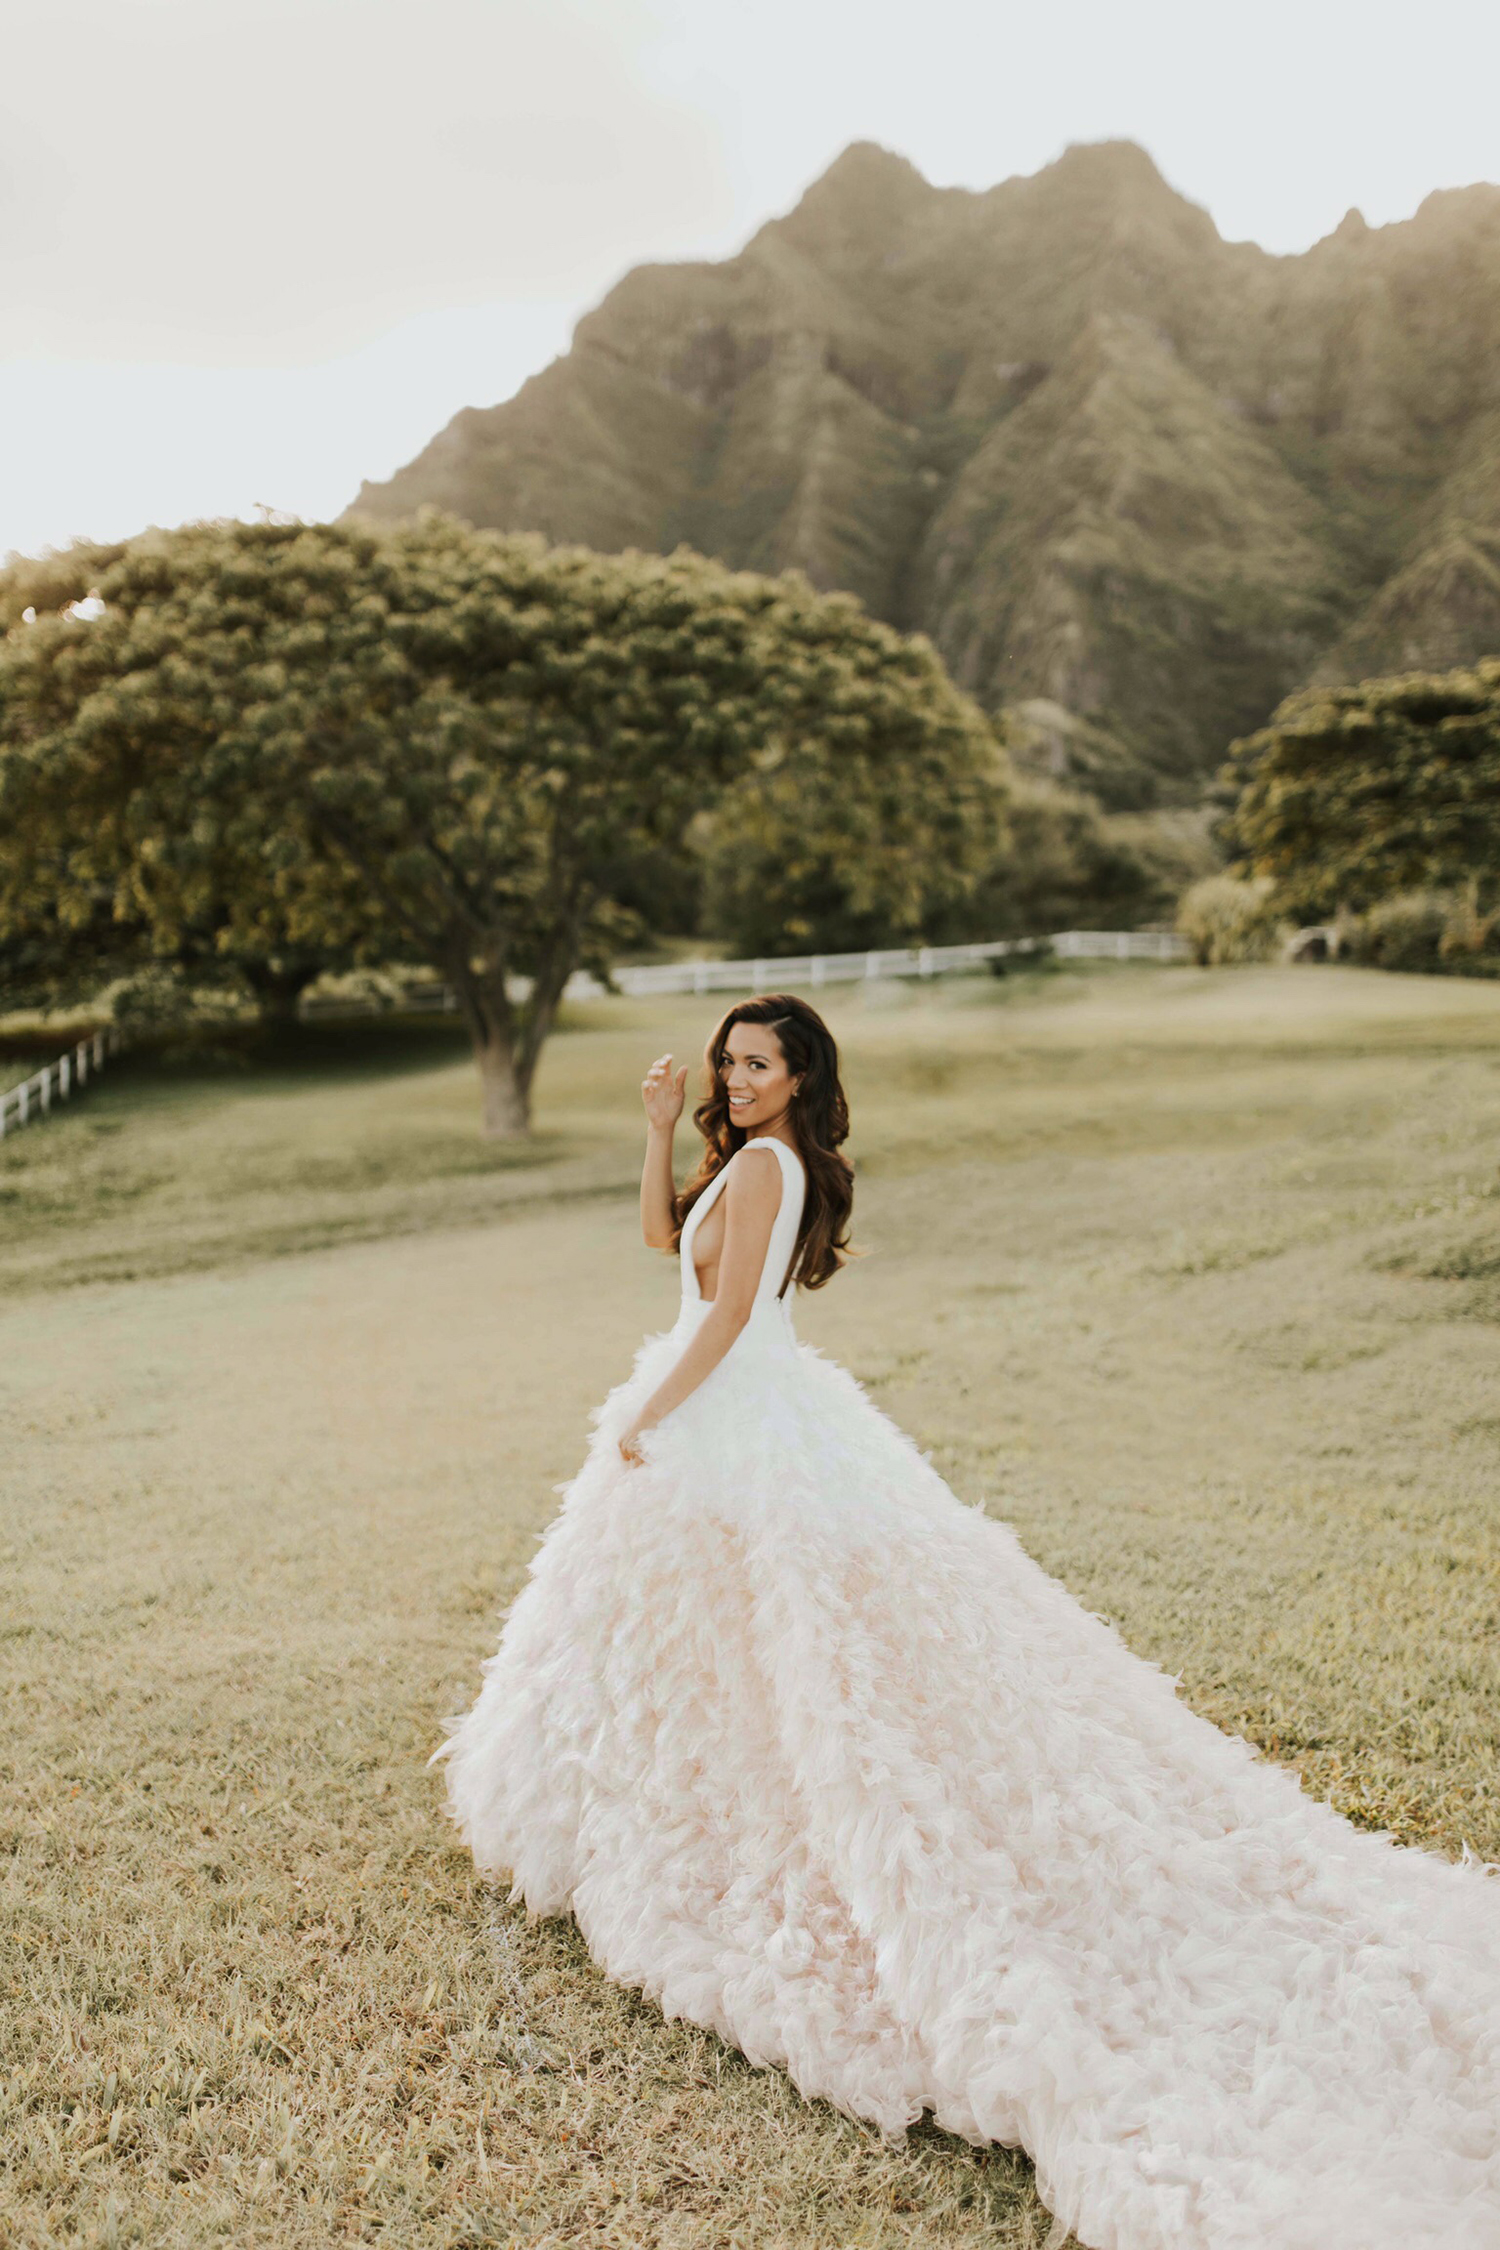 Jessi Malay wearing Pronovias